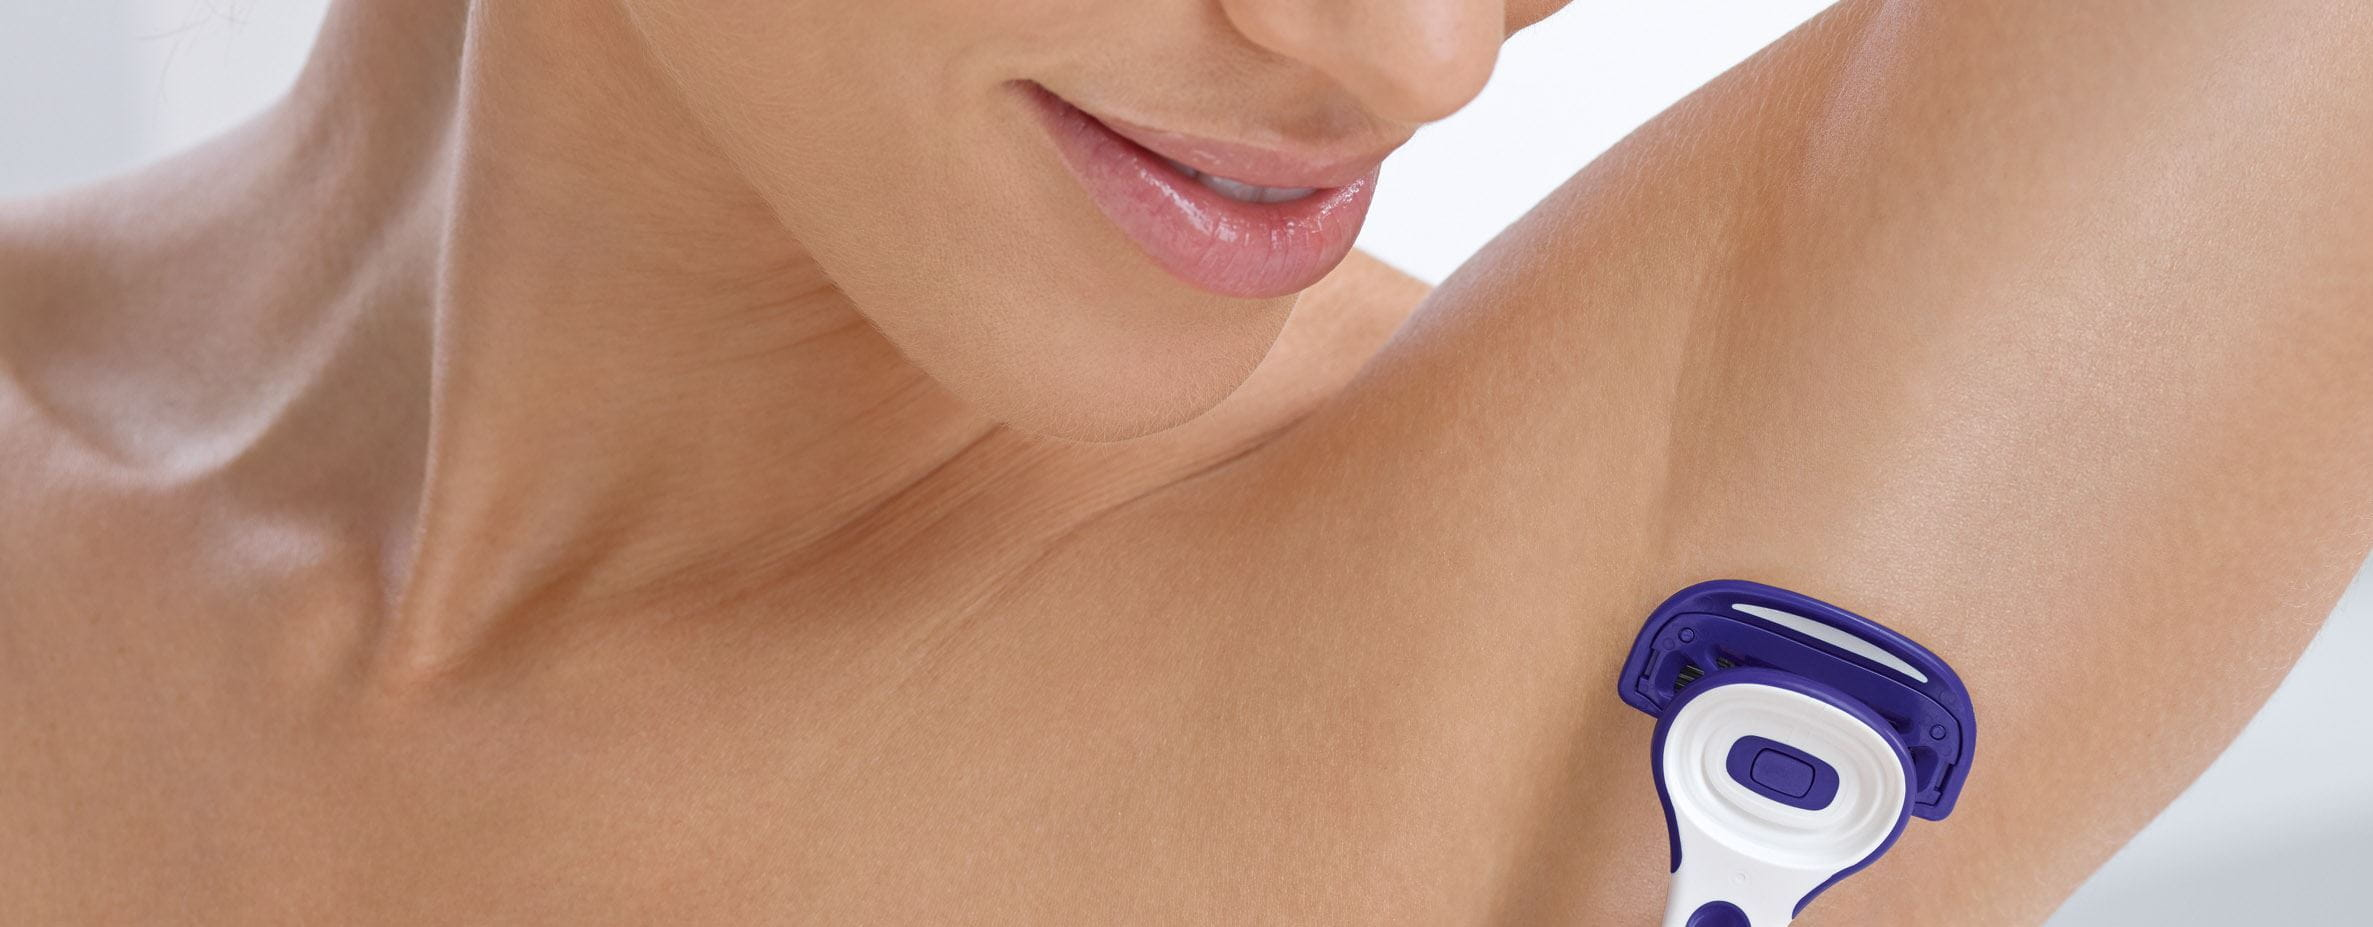 How To Avoid Underarm Shaving Rash